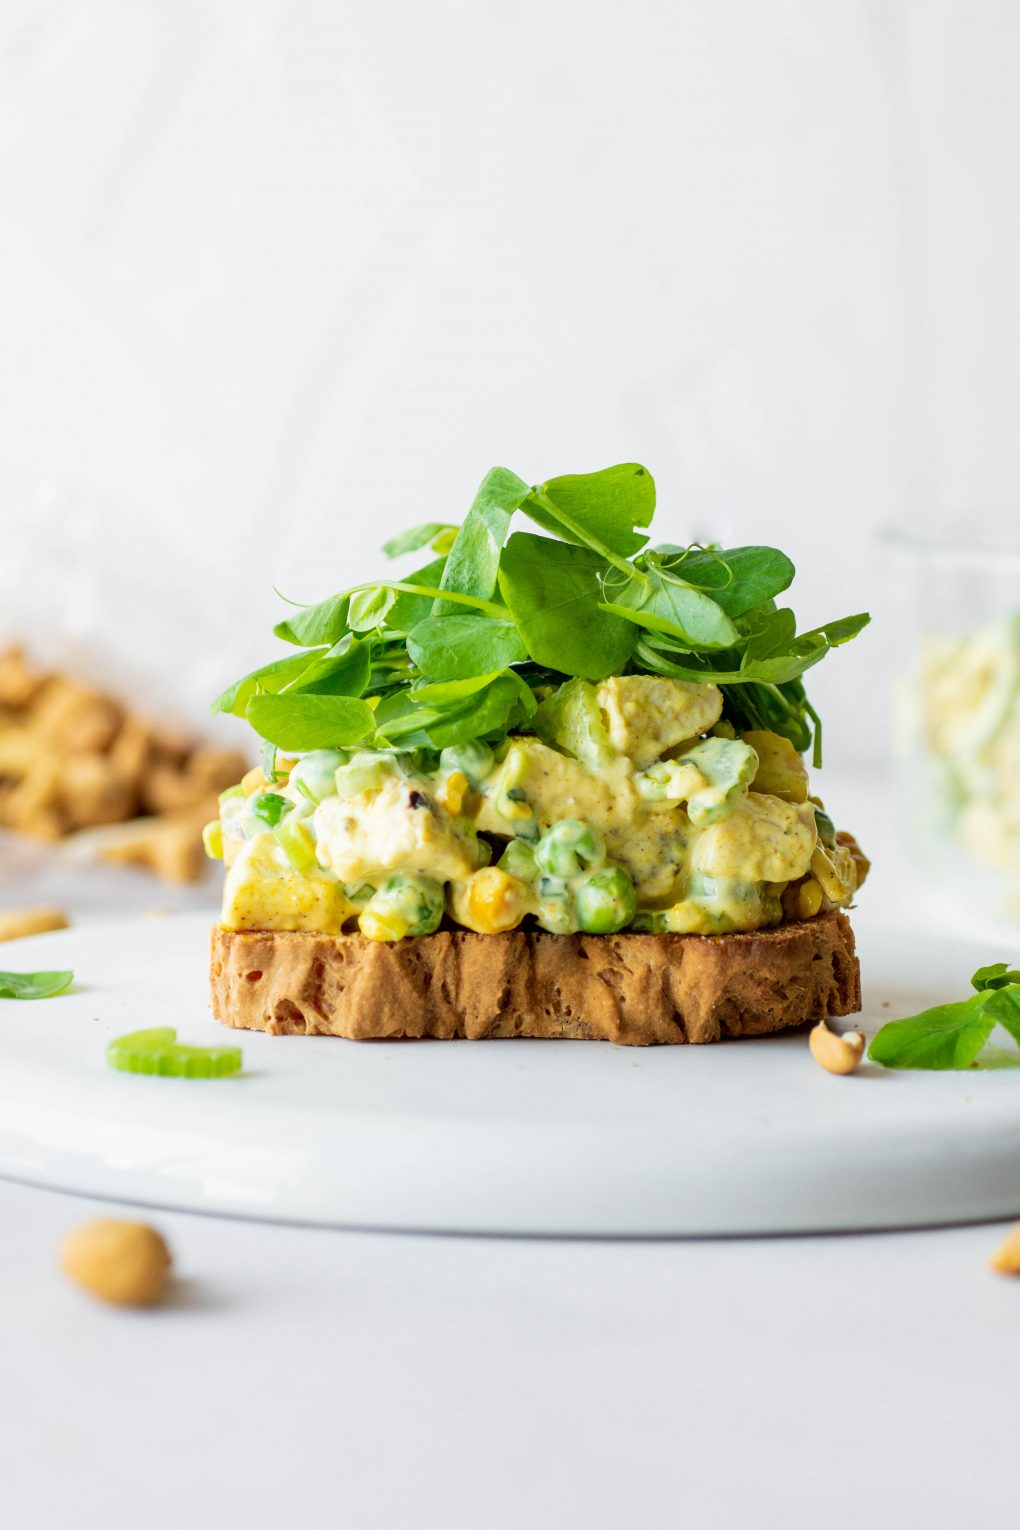 Close up side view of an open faced chicken curry salad sandwich with bright greens on a white background.